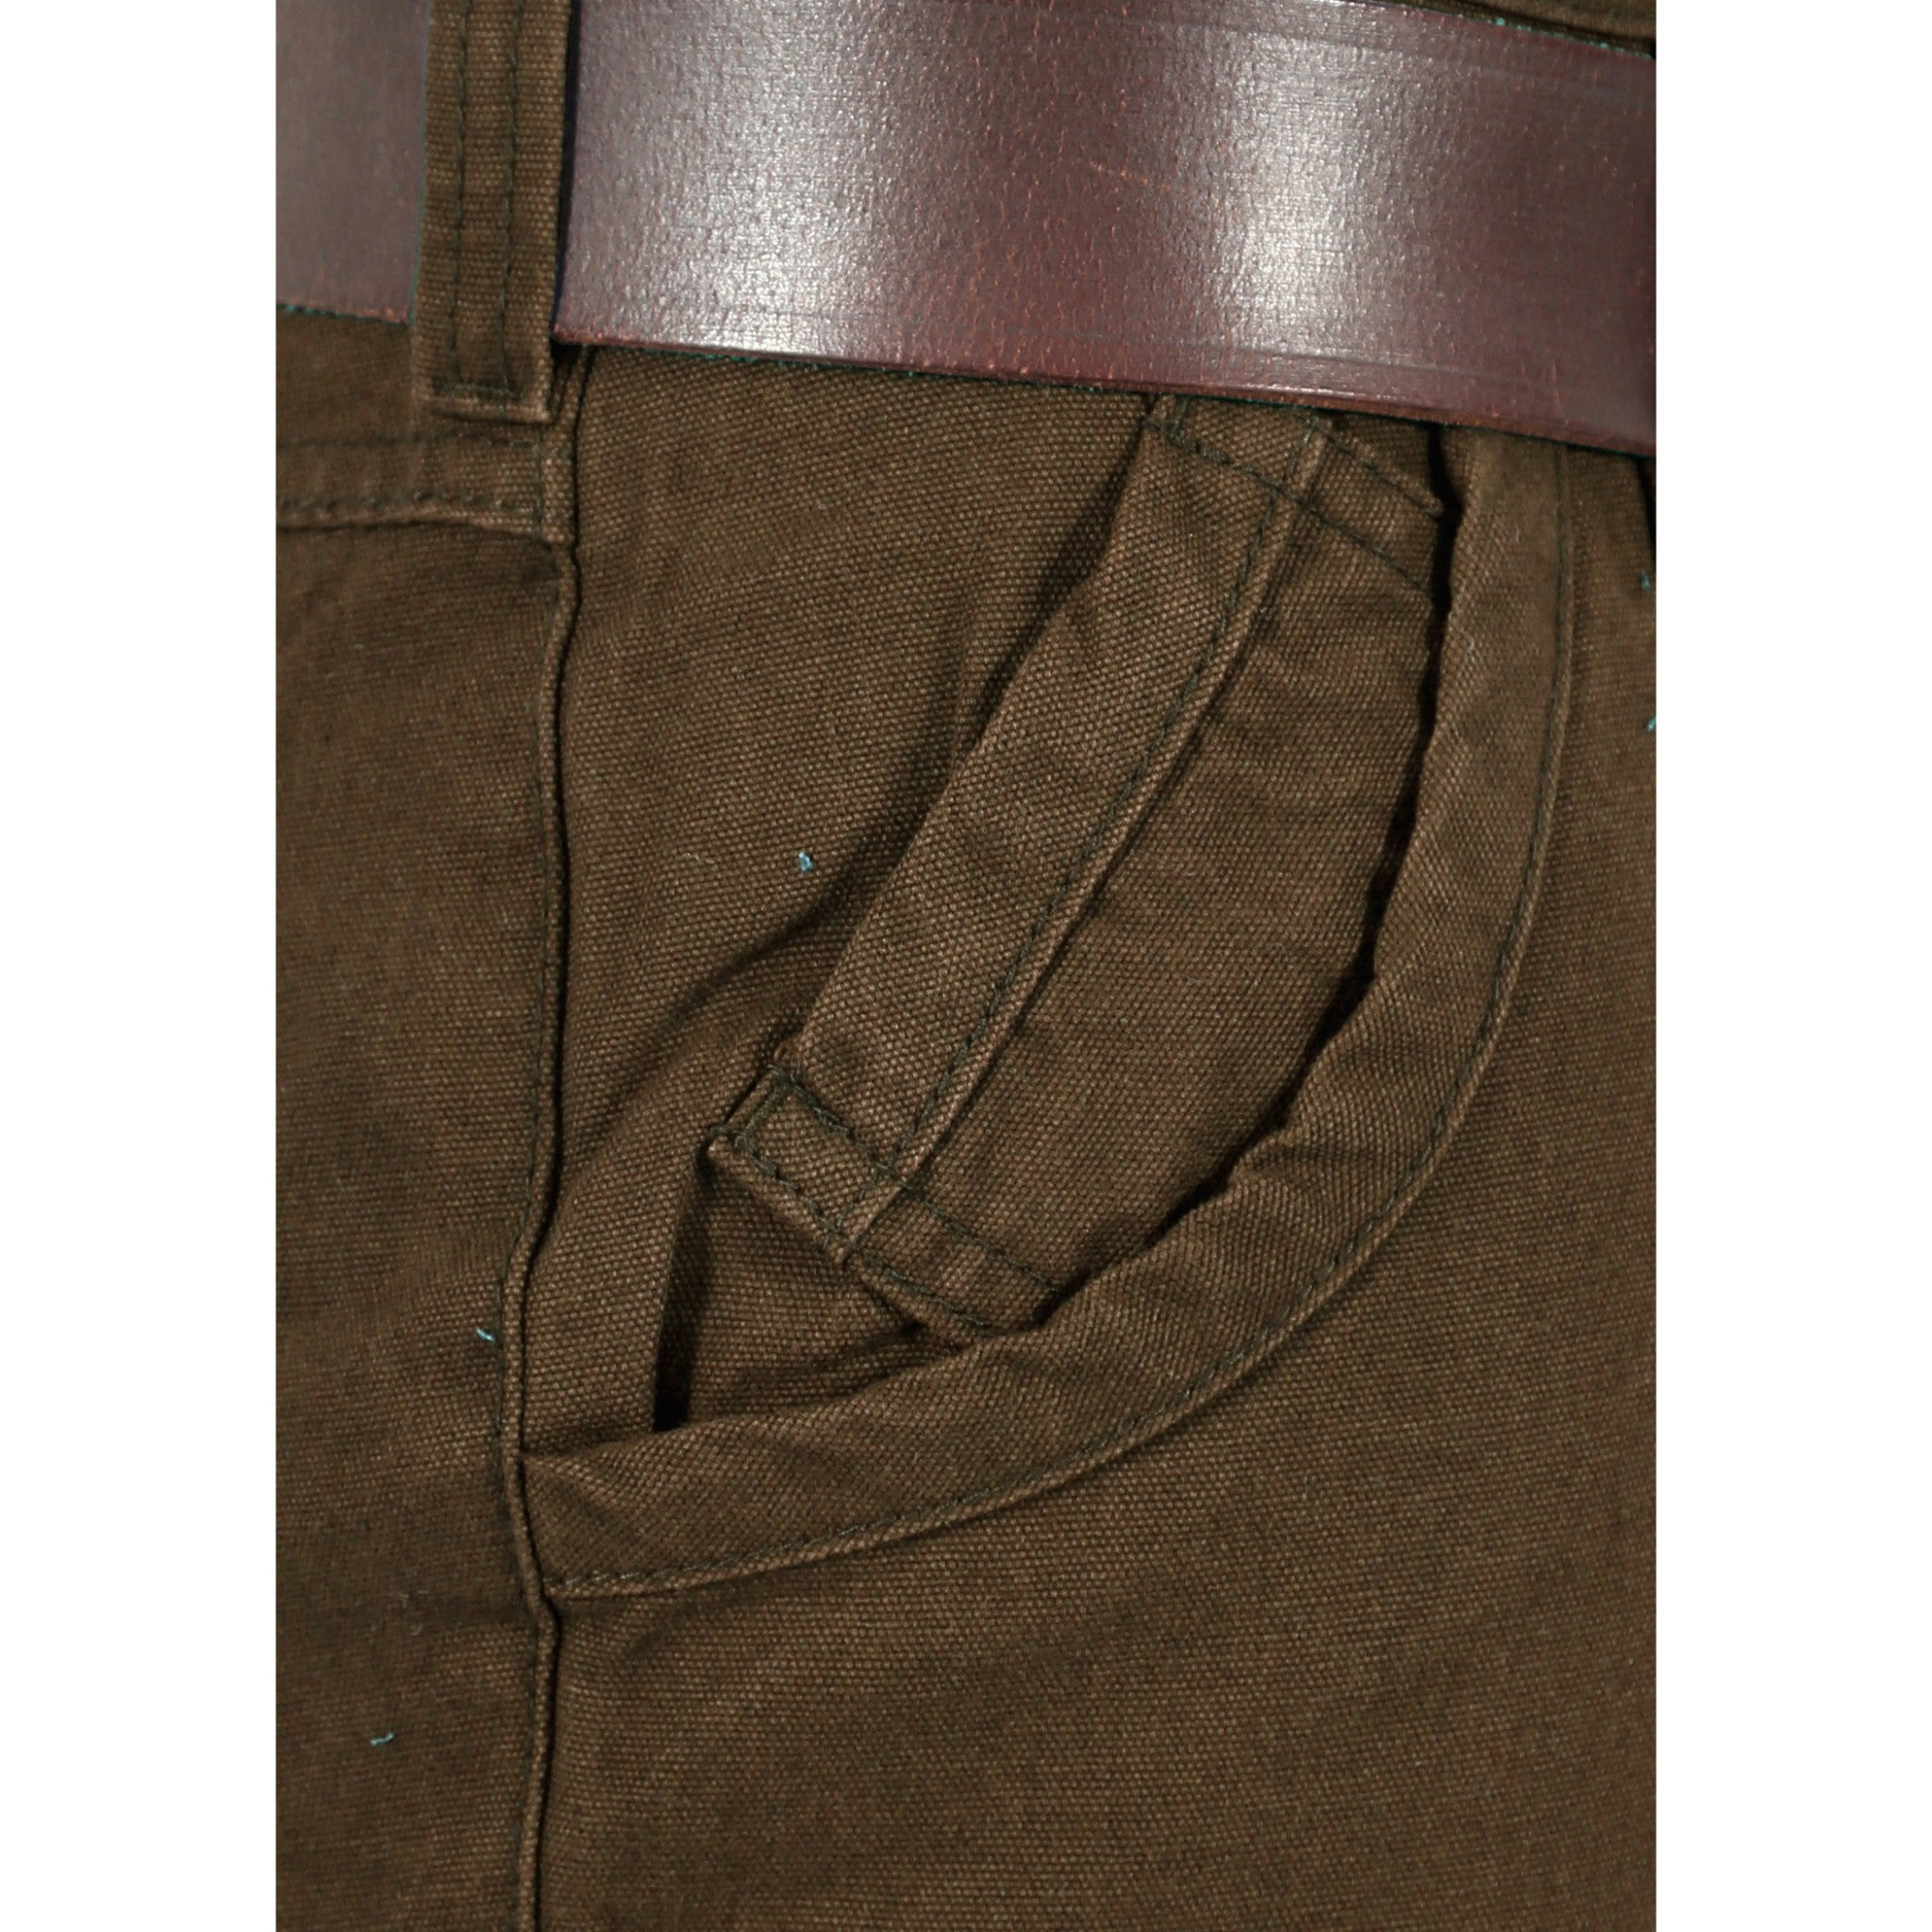 Olive Trouser close up view